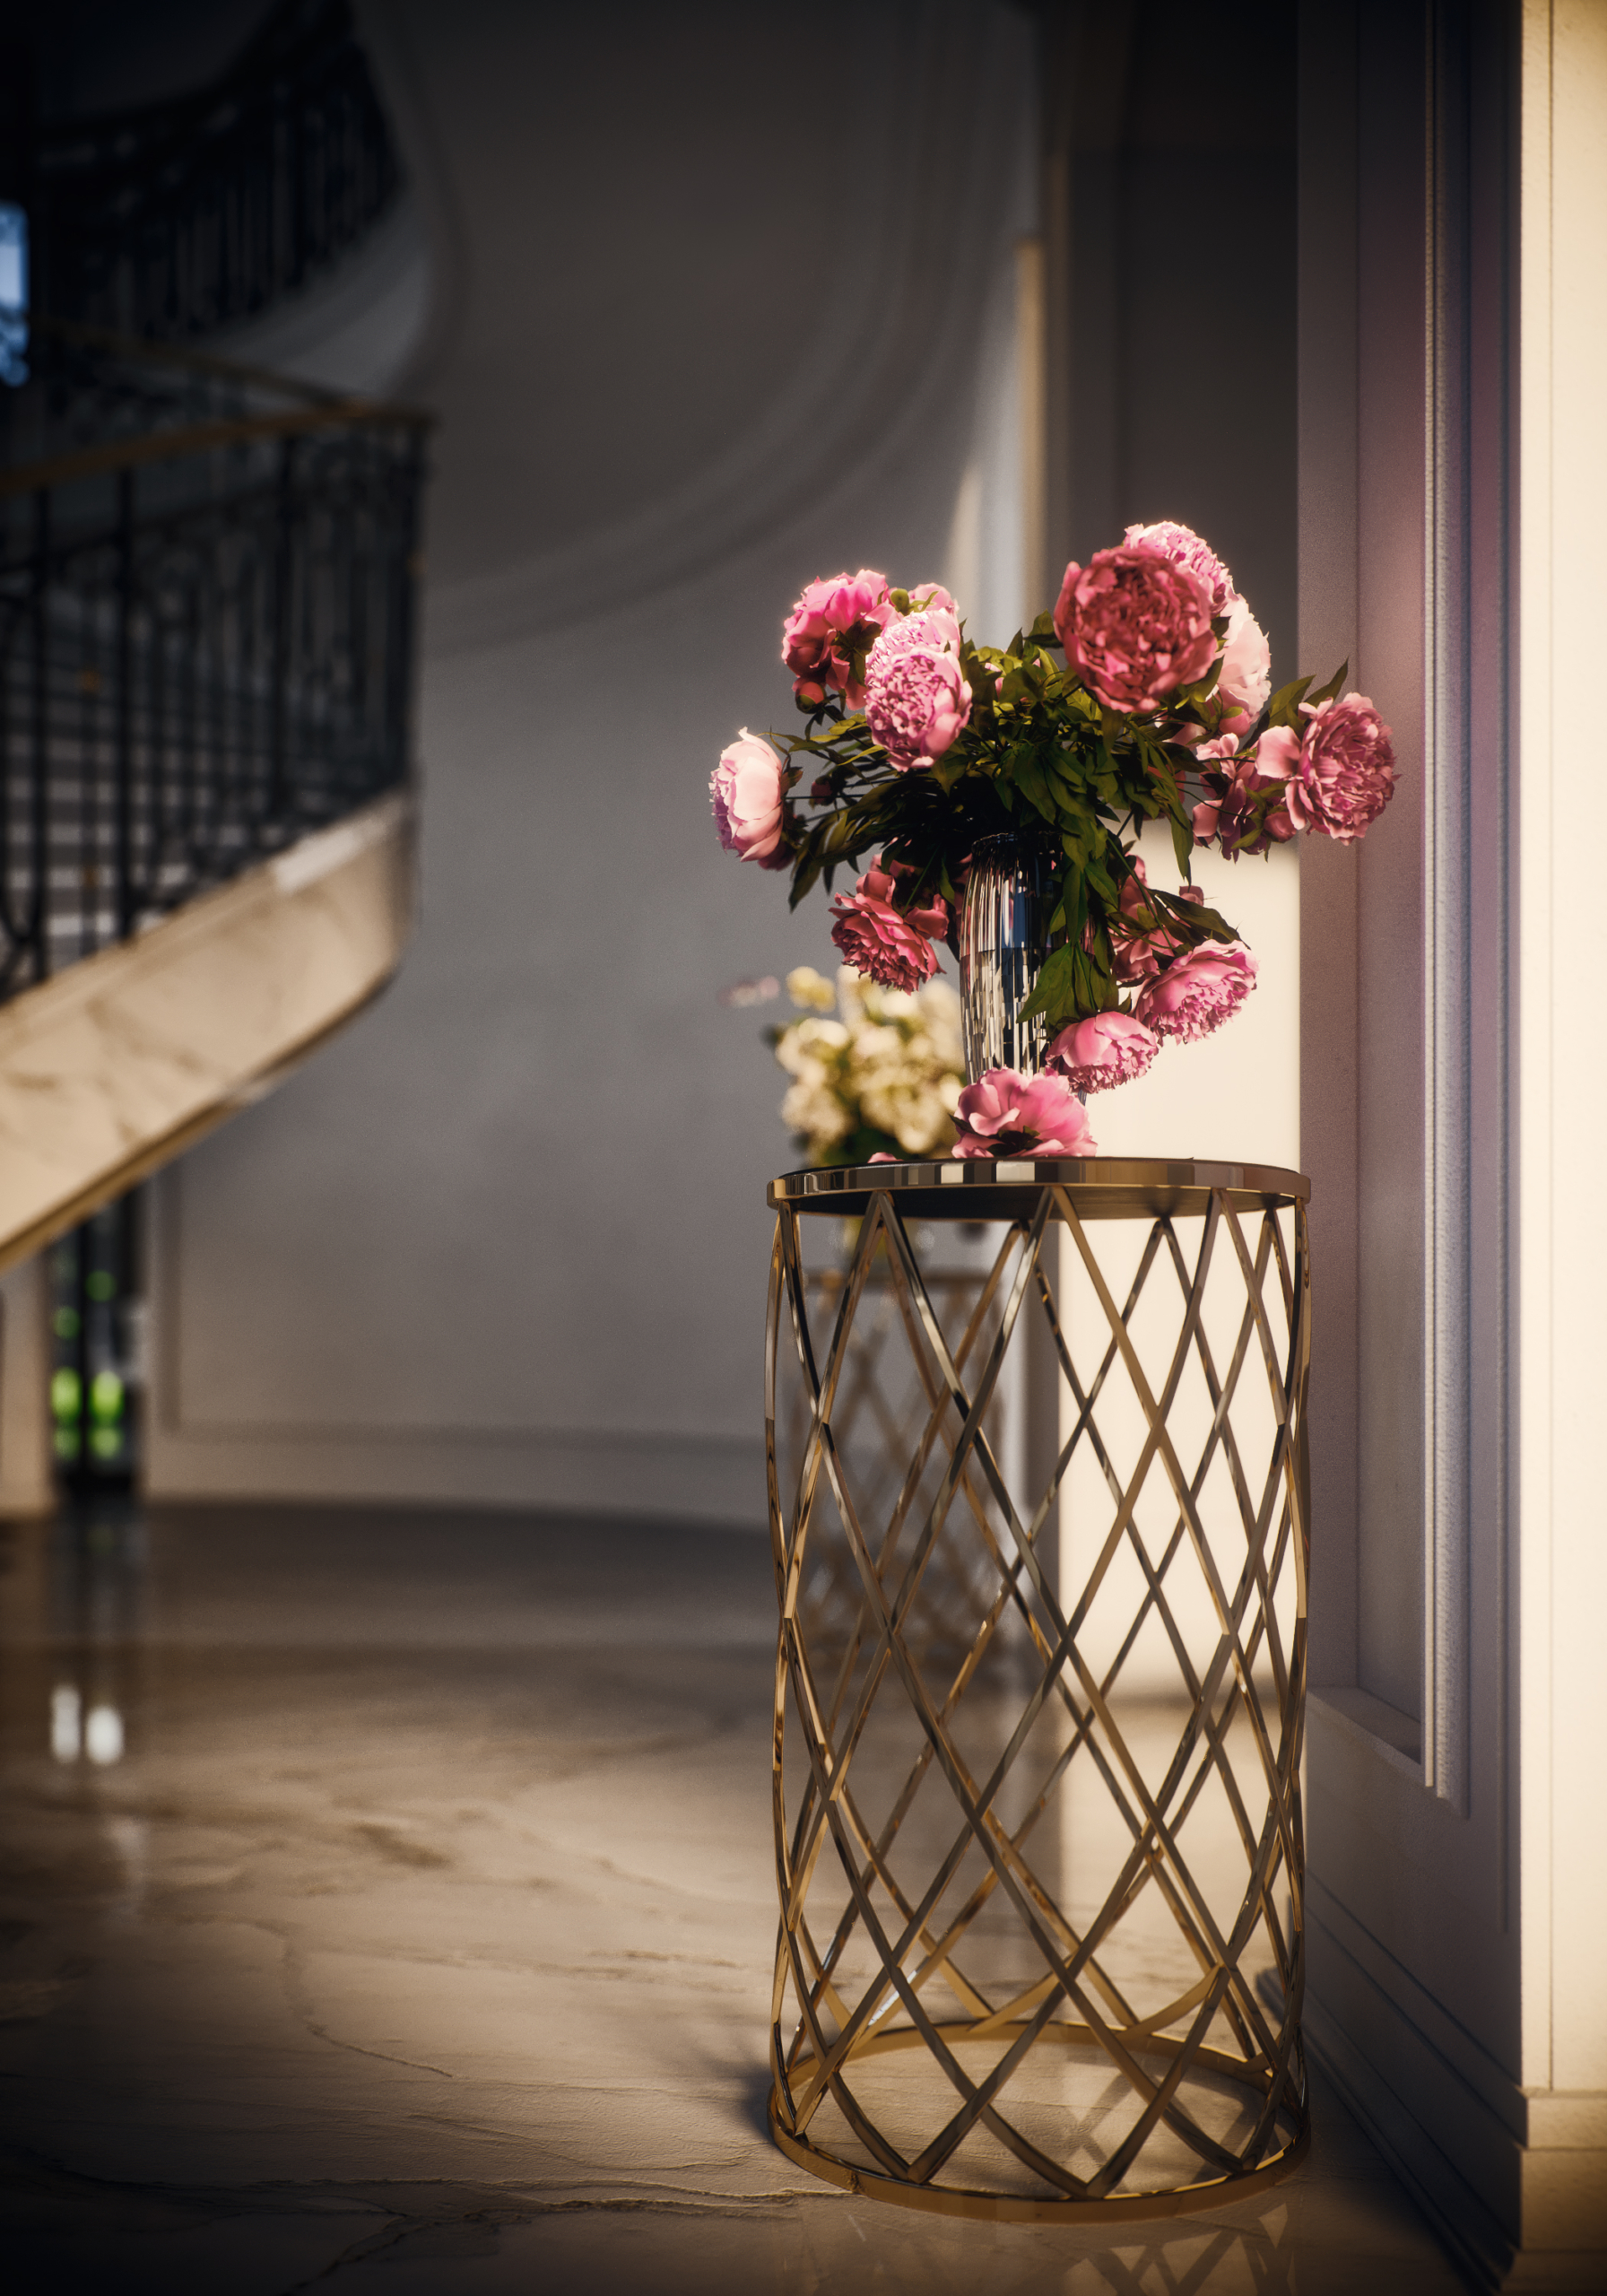 3d-rendering-interior-with-flowers-image